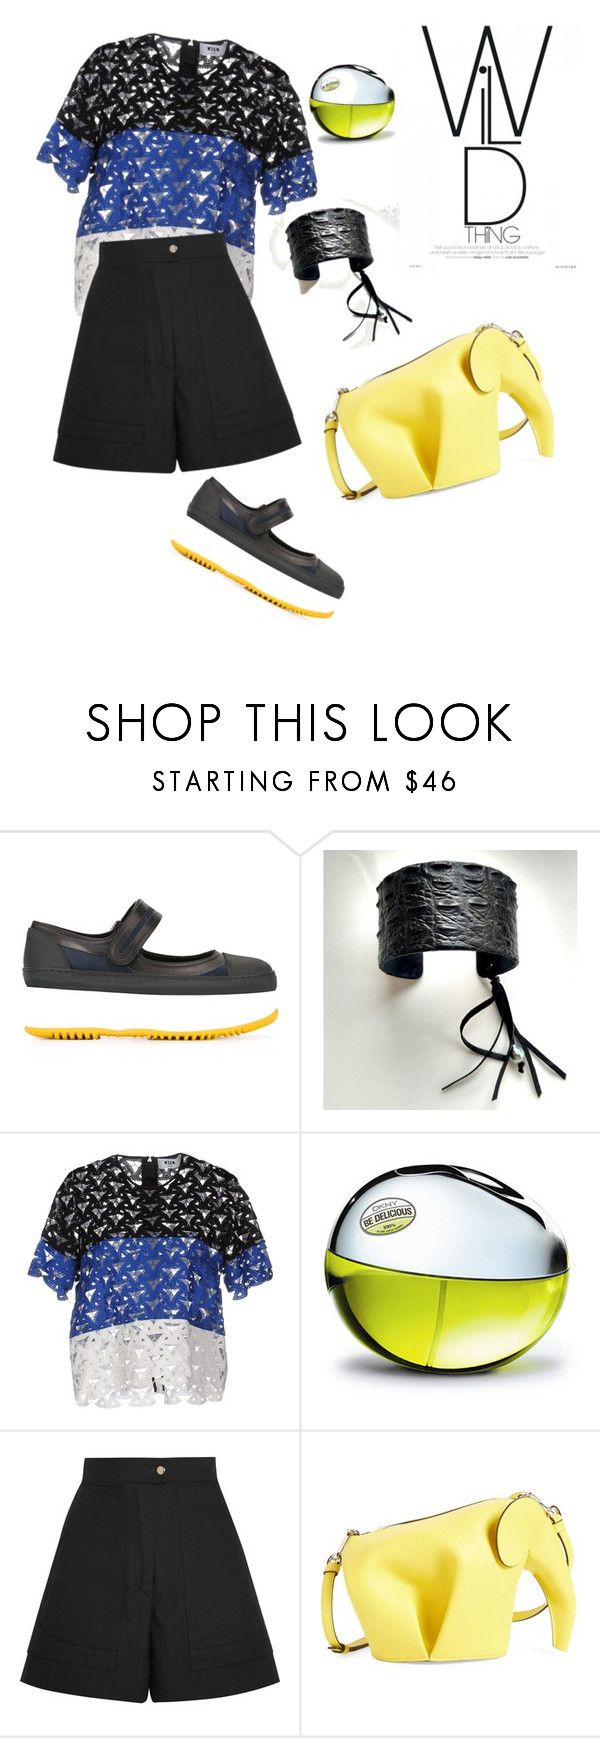 """""""go wild!#finepearls & crocodile bracelet"""" by olivia-stones ❤ liked on Polyvore featuring Marni, MSGM, DKNY, Isabel Marant and Loewe"""